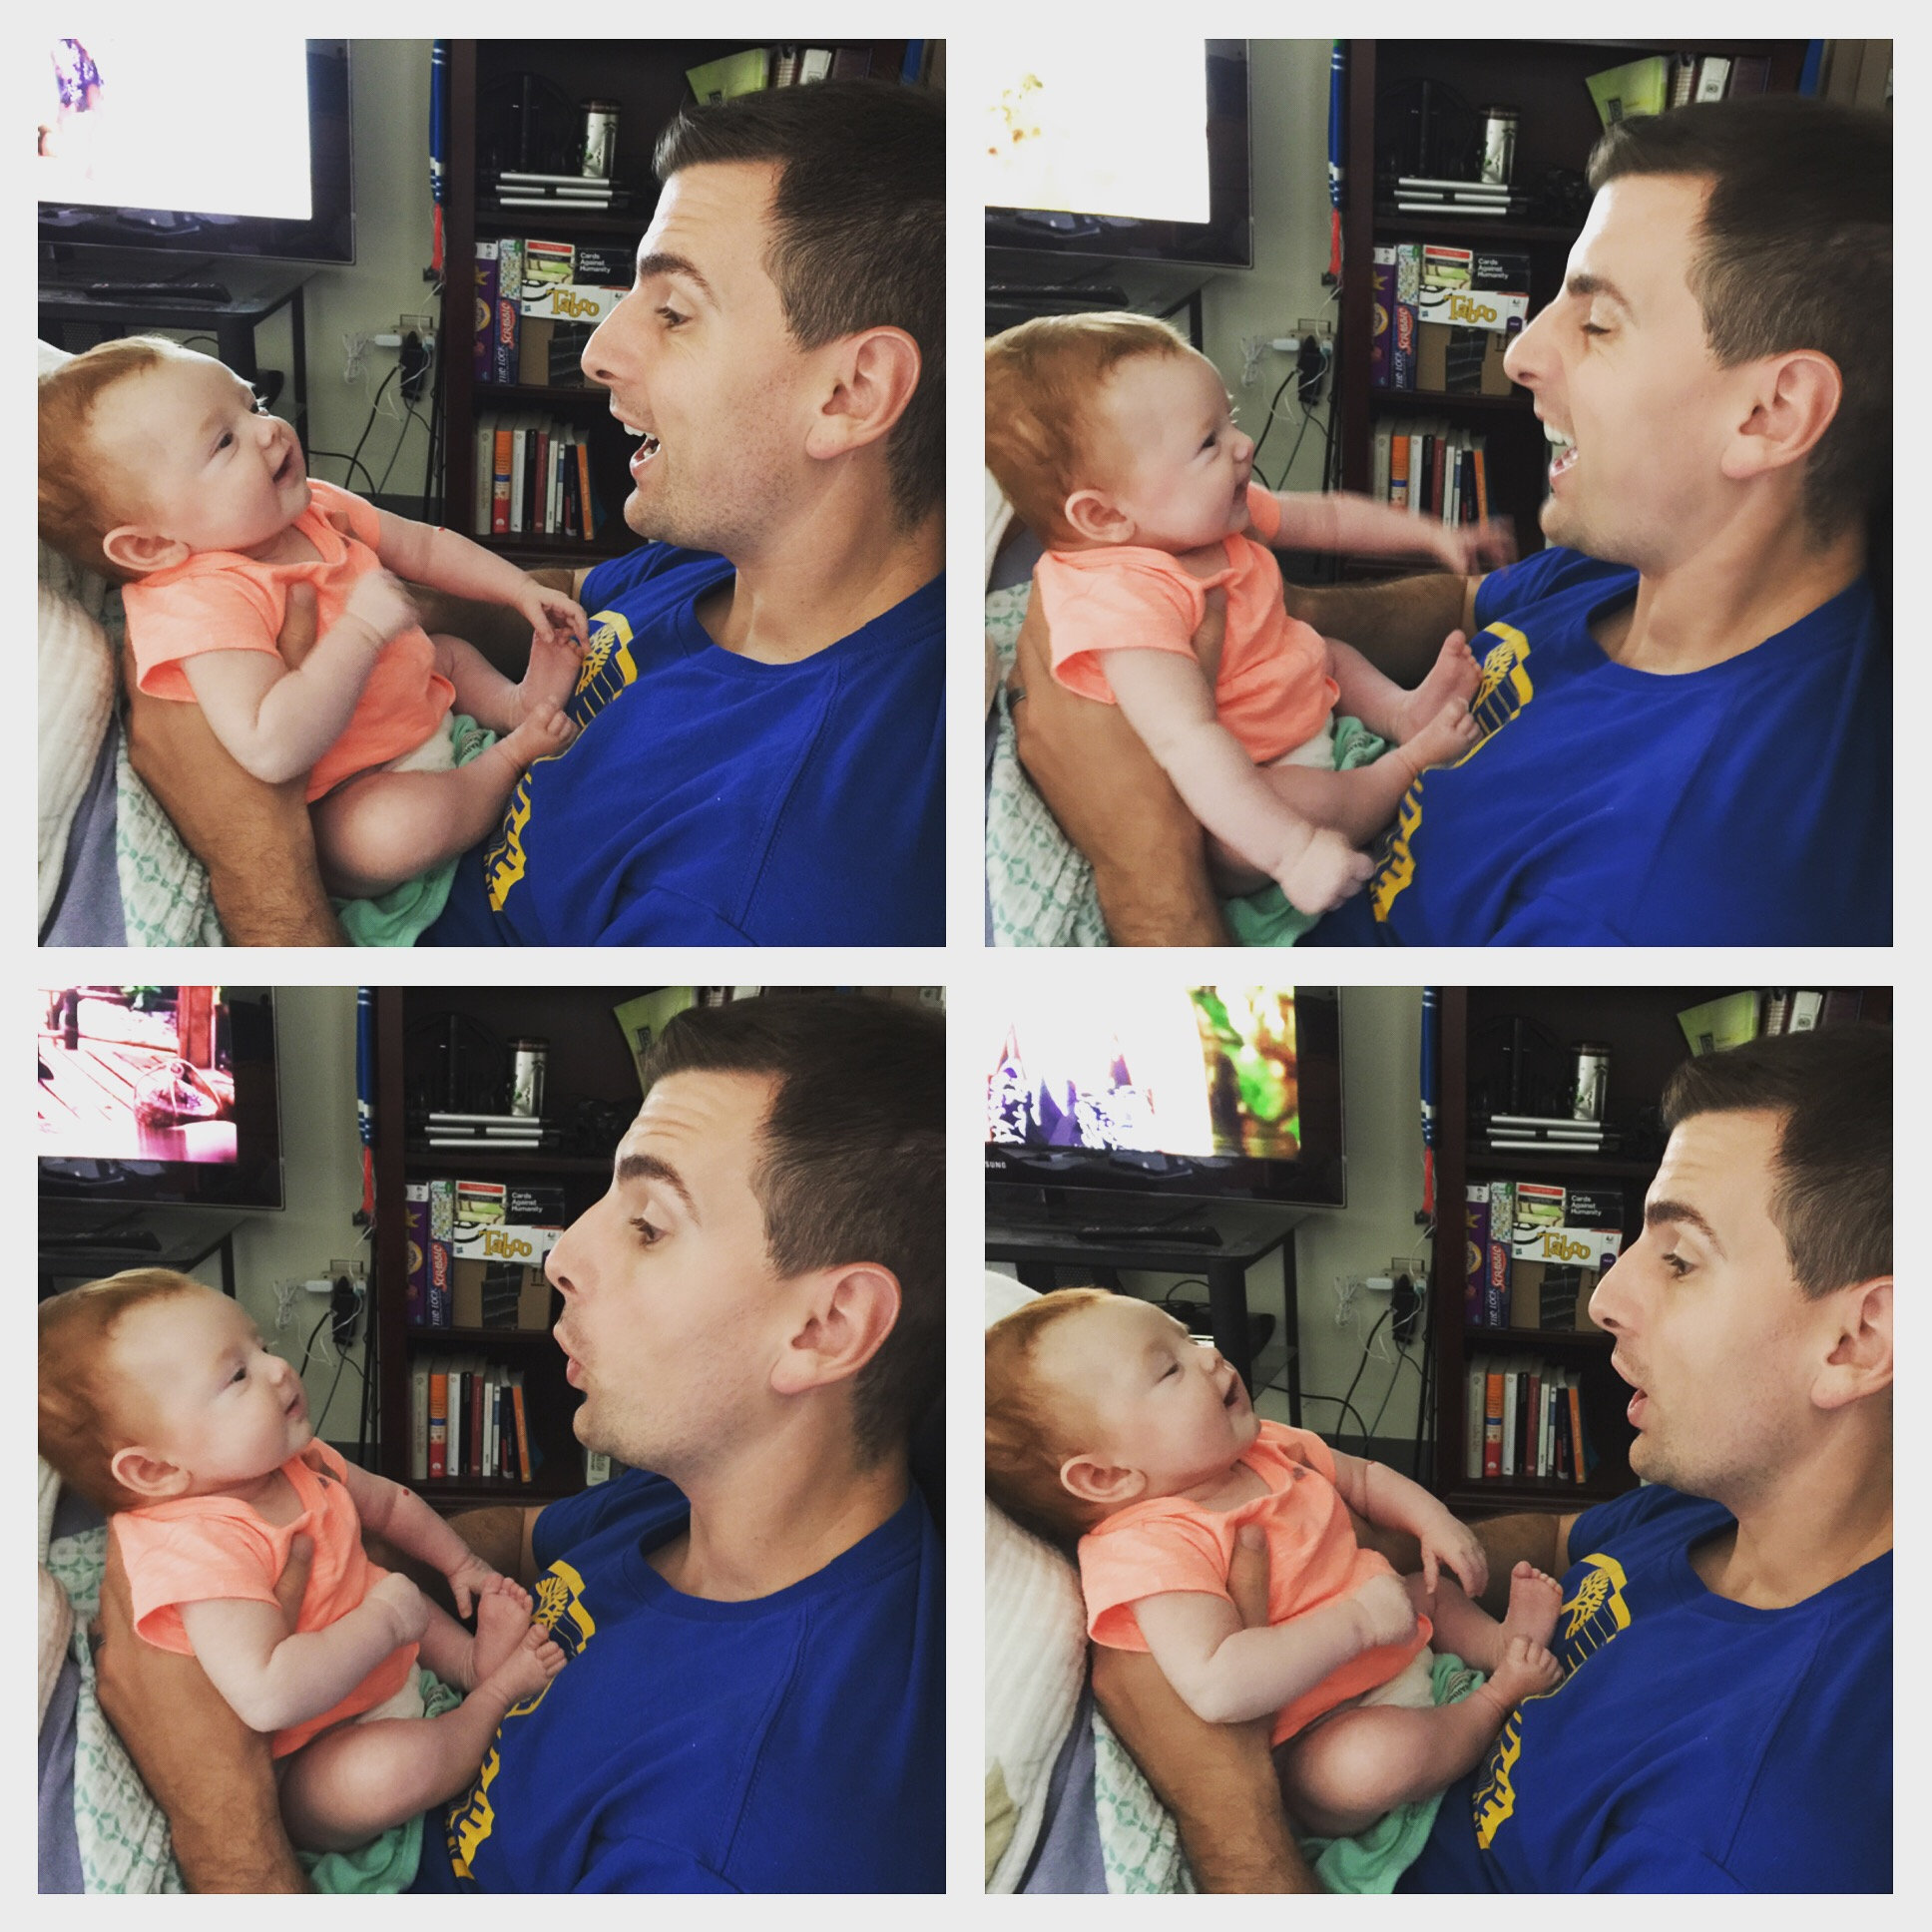 Copying dad's silly faces